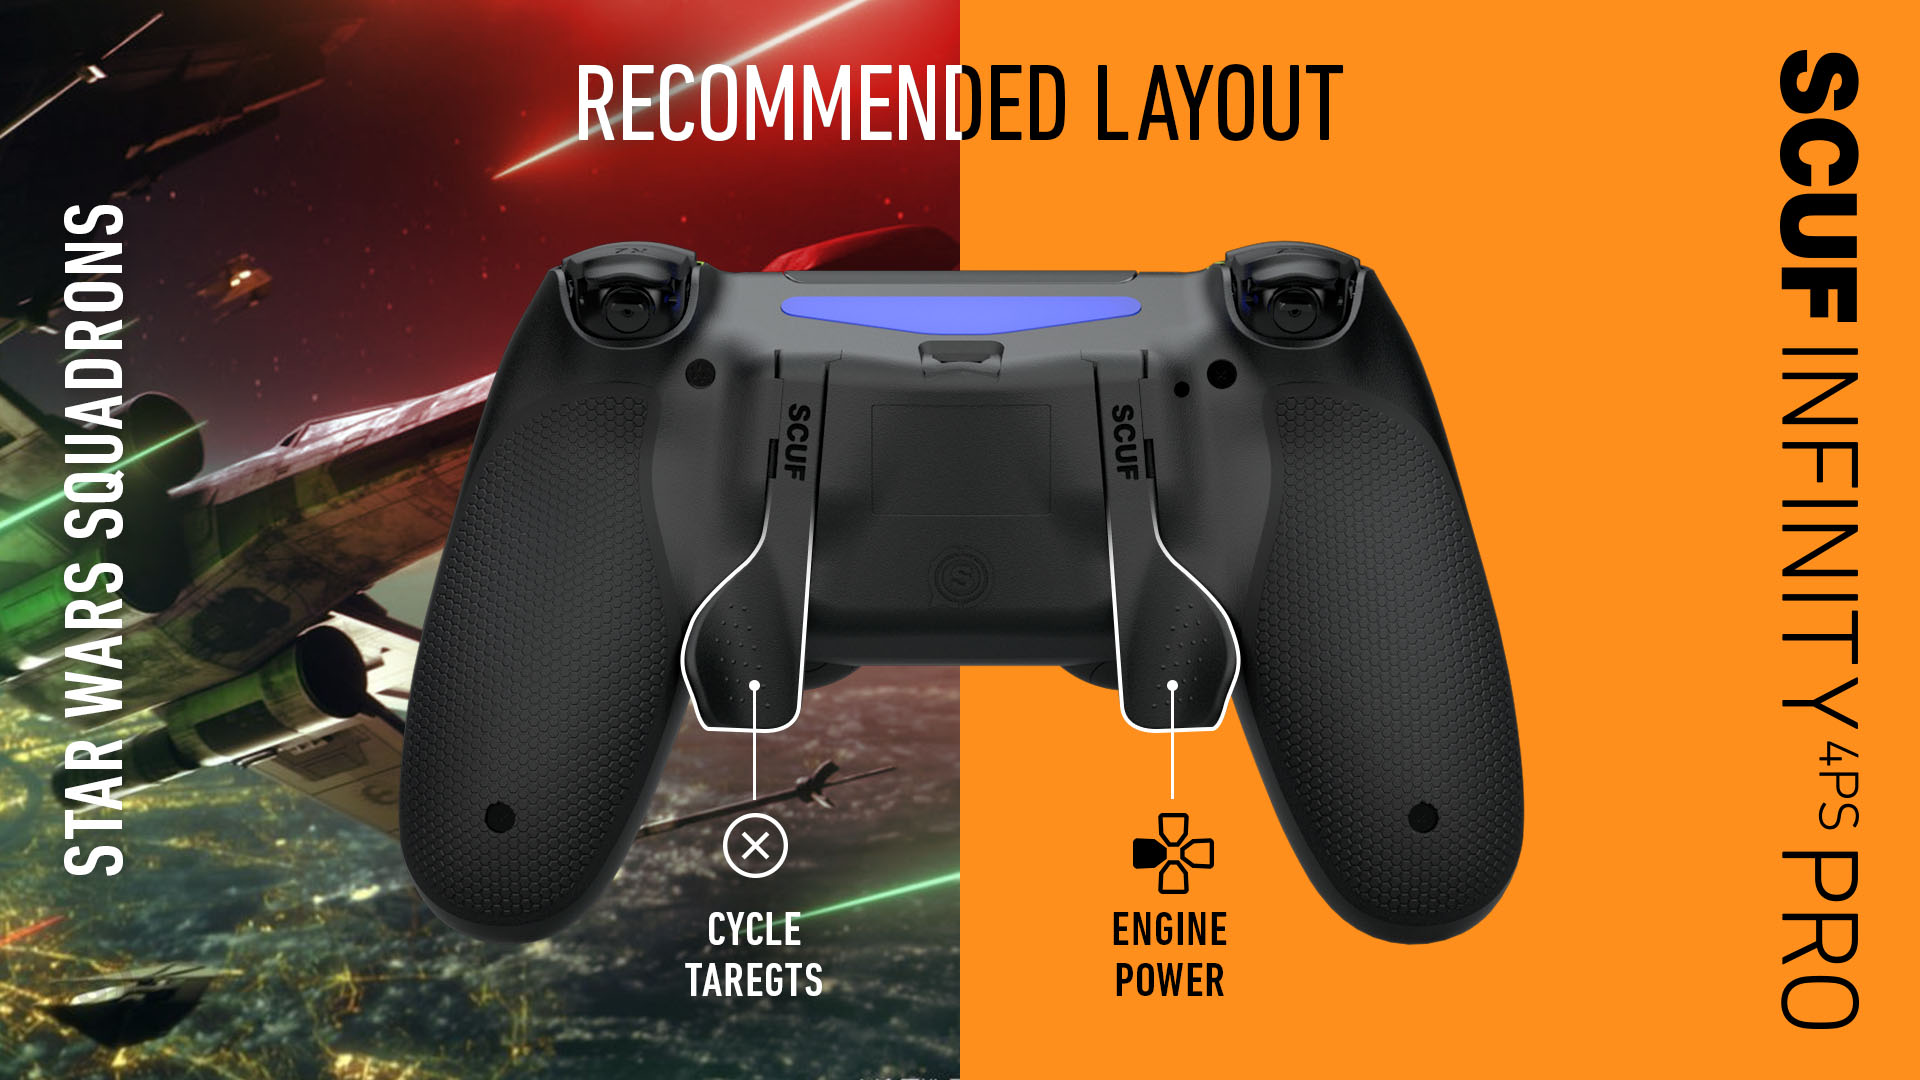 Star Wars Squadrons PS4 Controller SCUF INFINITY4PSPRO